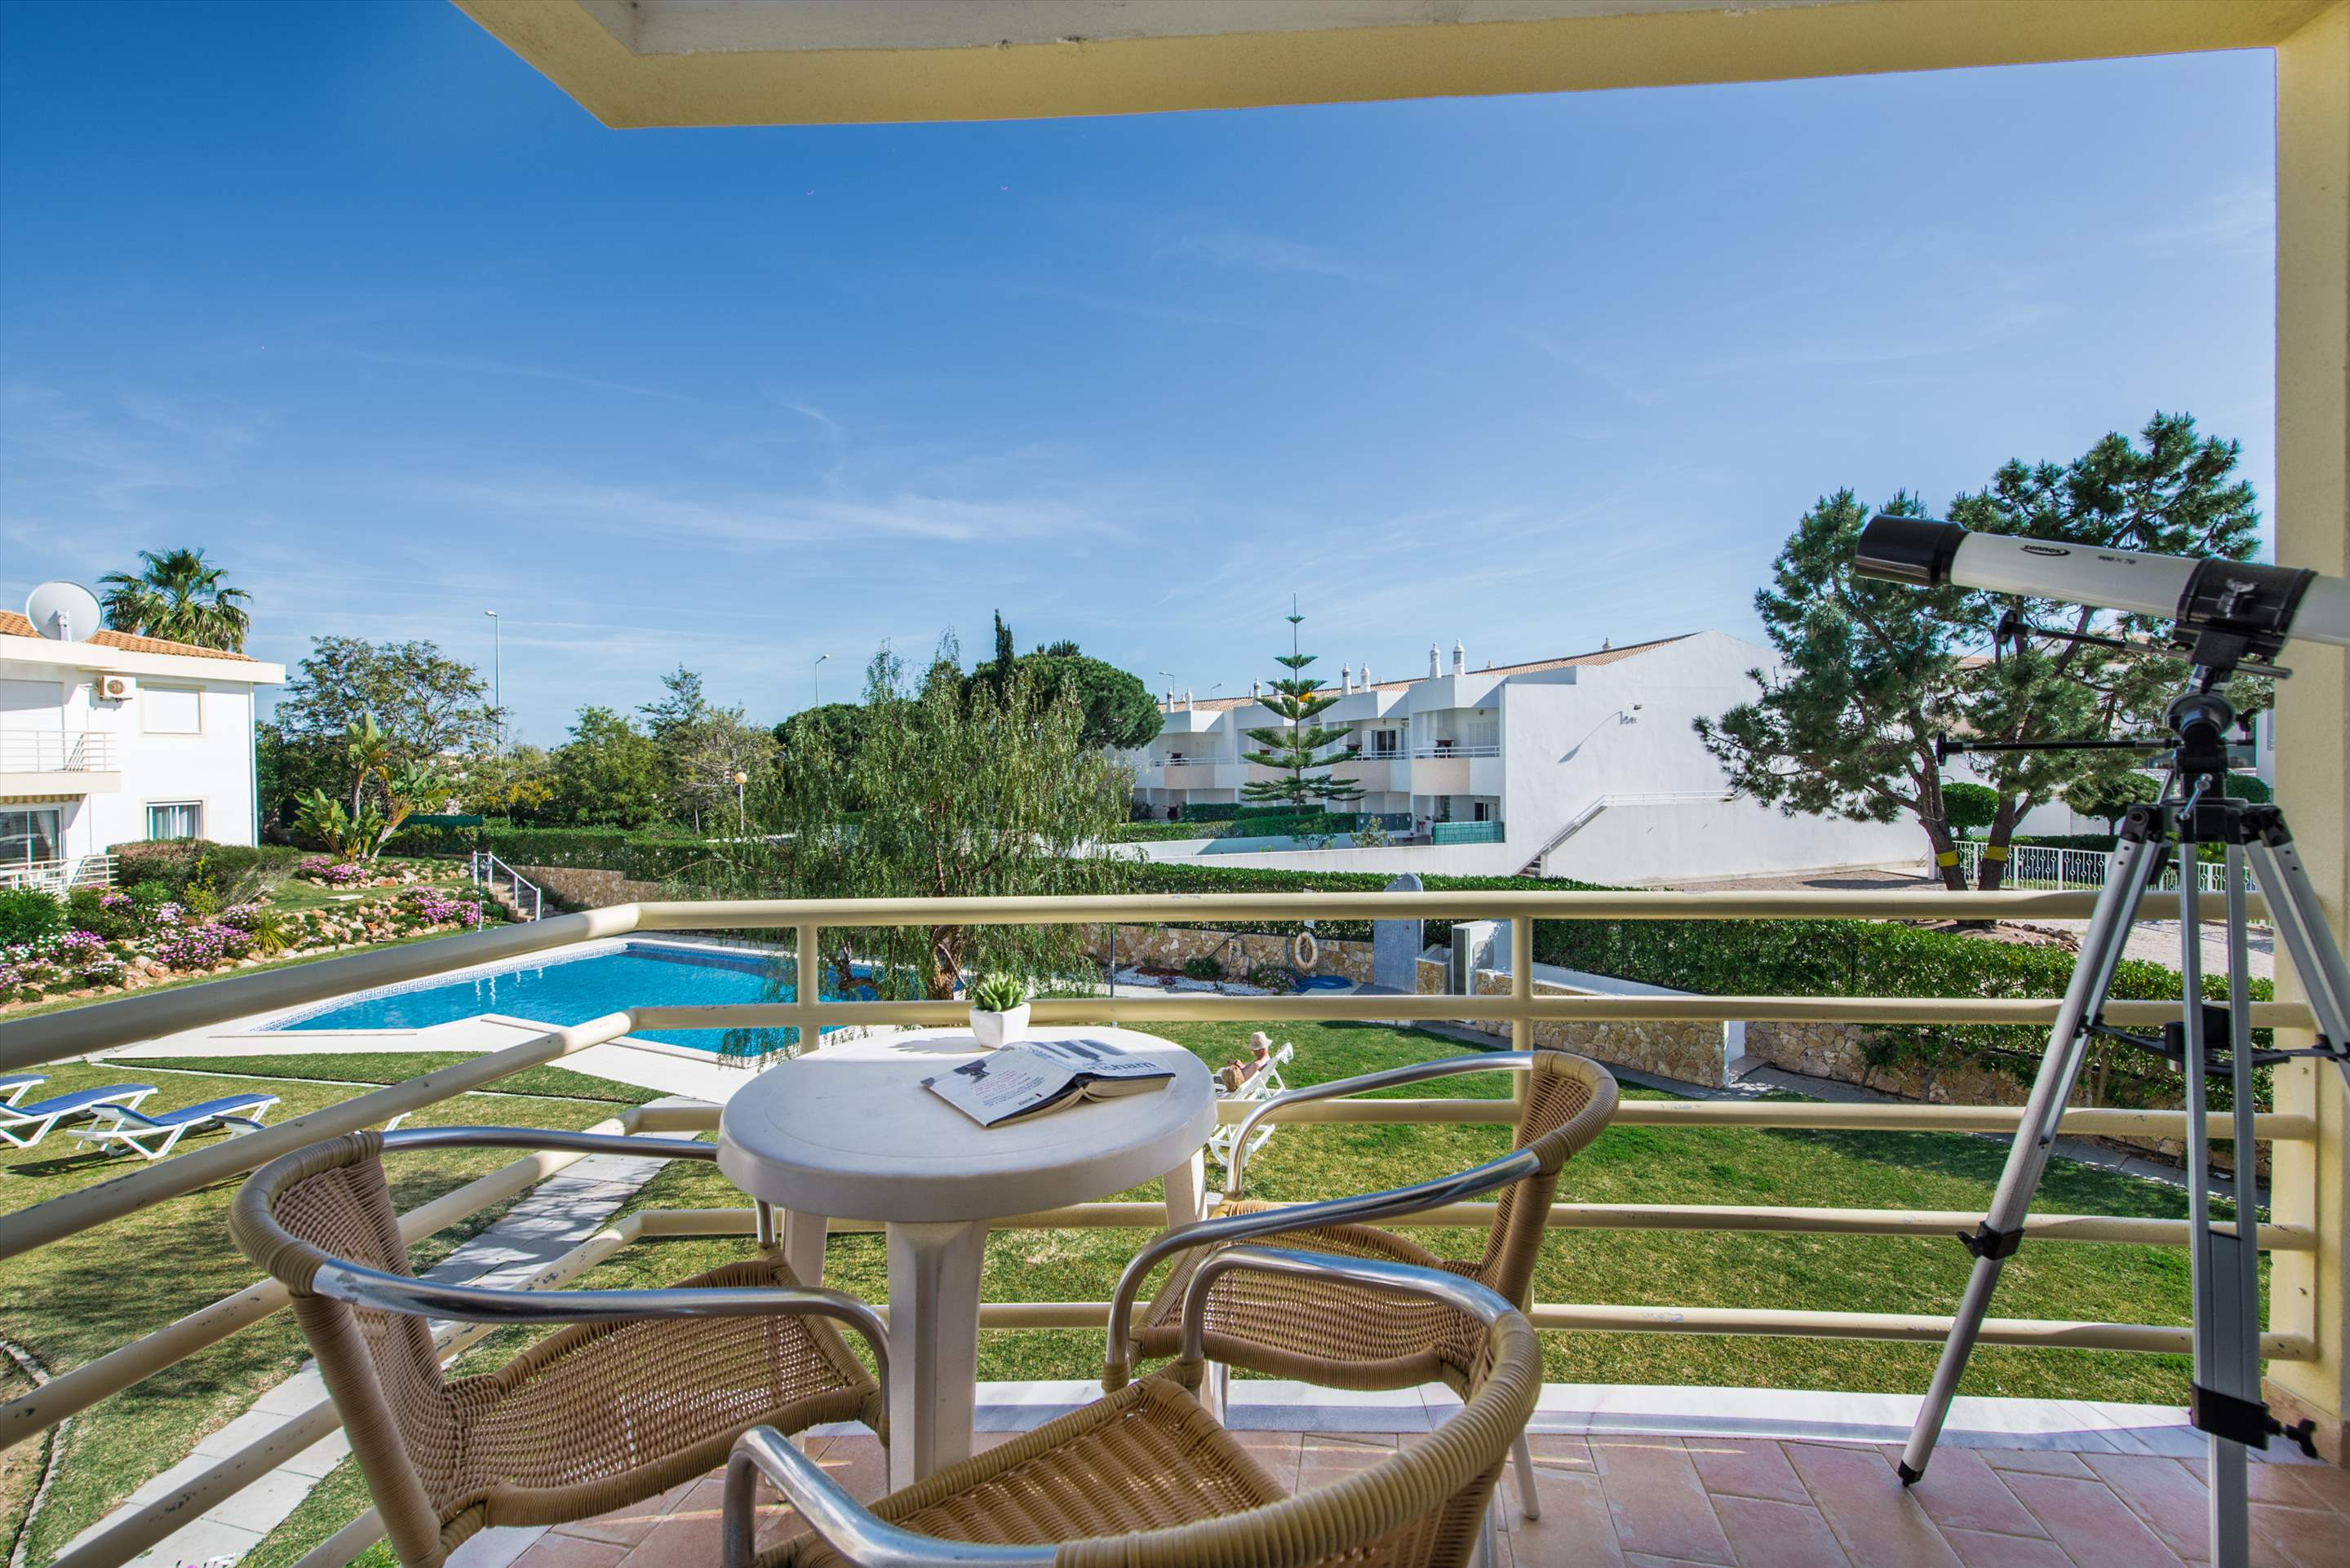 Apt 1E Gale Garden, For 5-6 Persons, 3 bedroom apartment in Gale, Vale da Parra and Guia, Algarve Photo #1